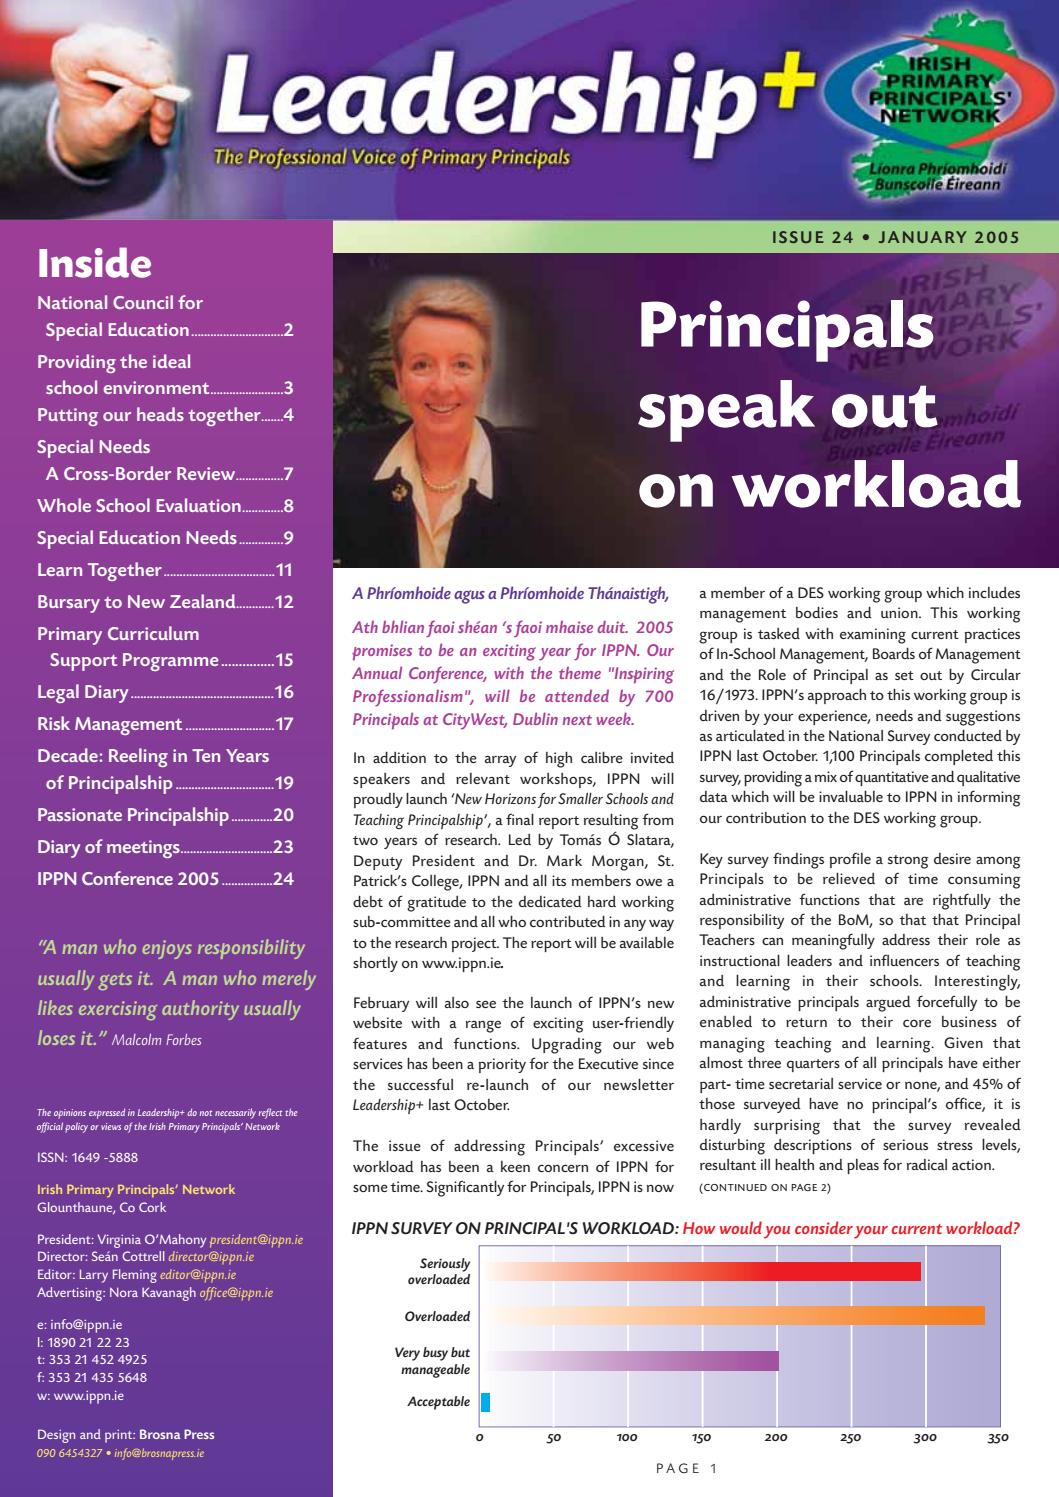 Leadership+ Issue 24 January 2005 by Irish Primary Principals